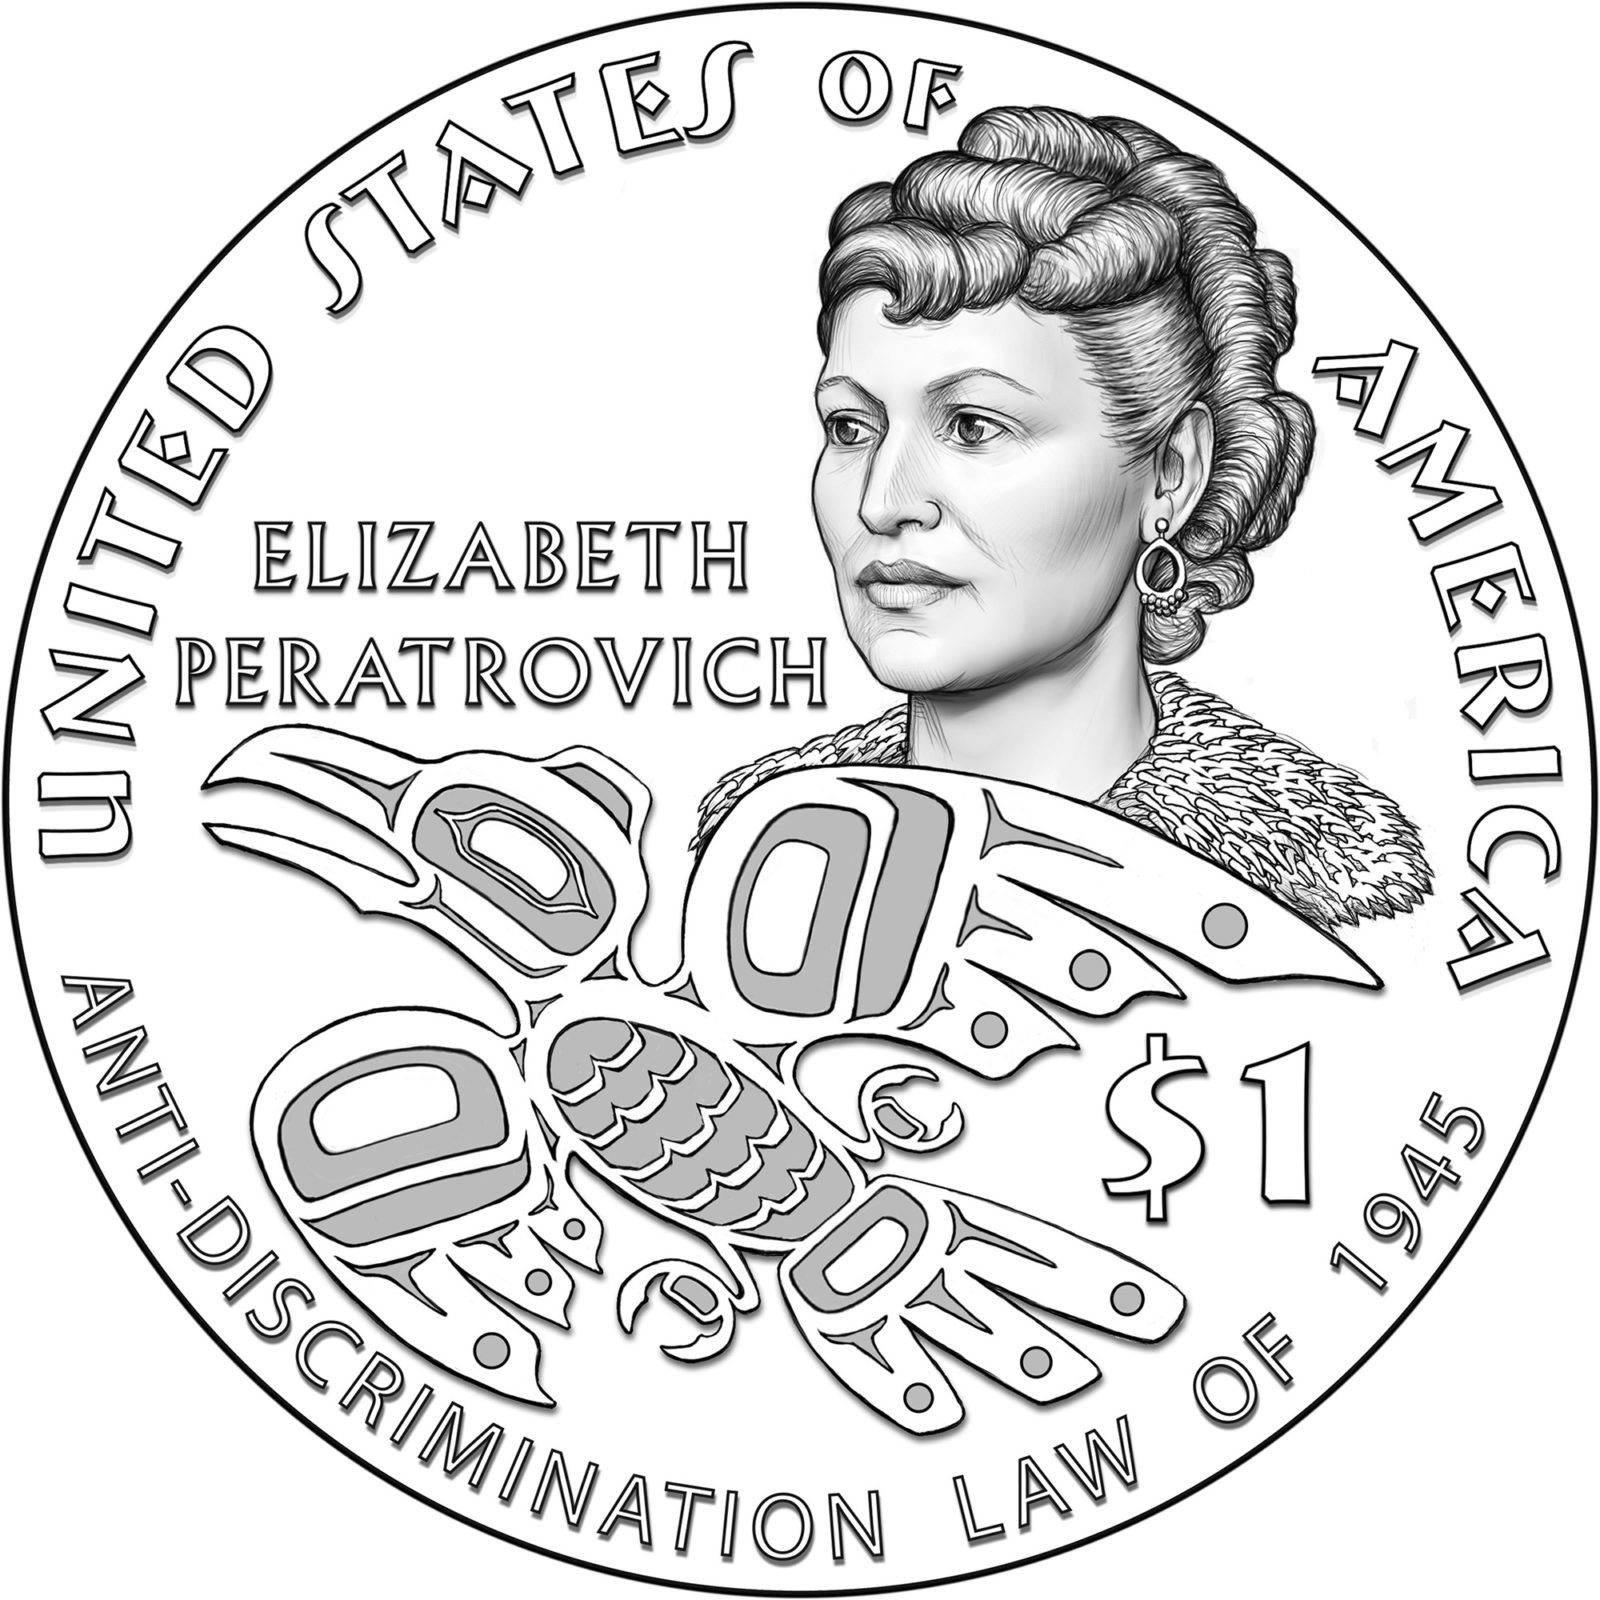 Honoring Elizabeth Peratrovich with a commemorative coin.